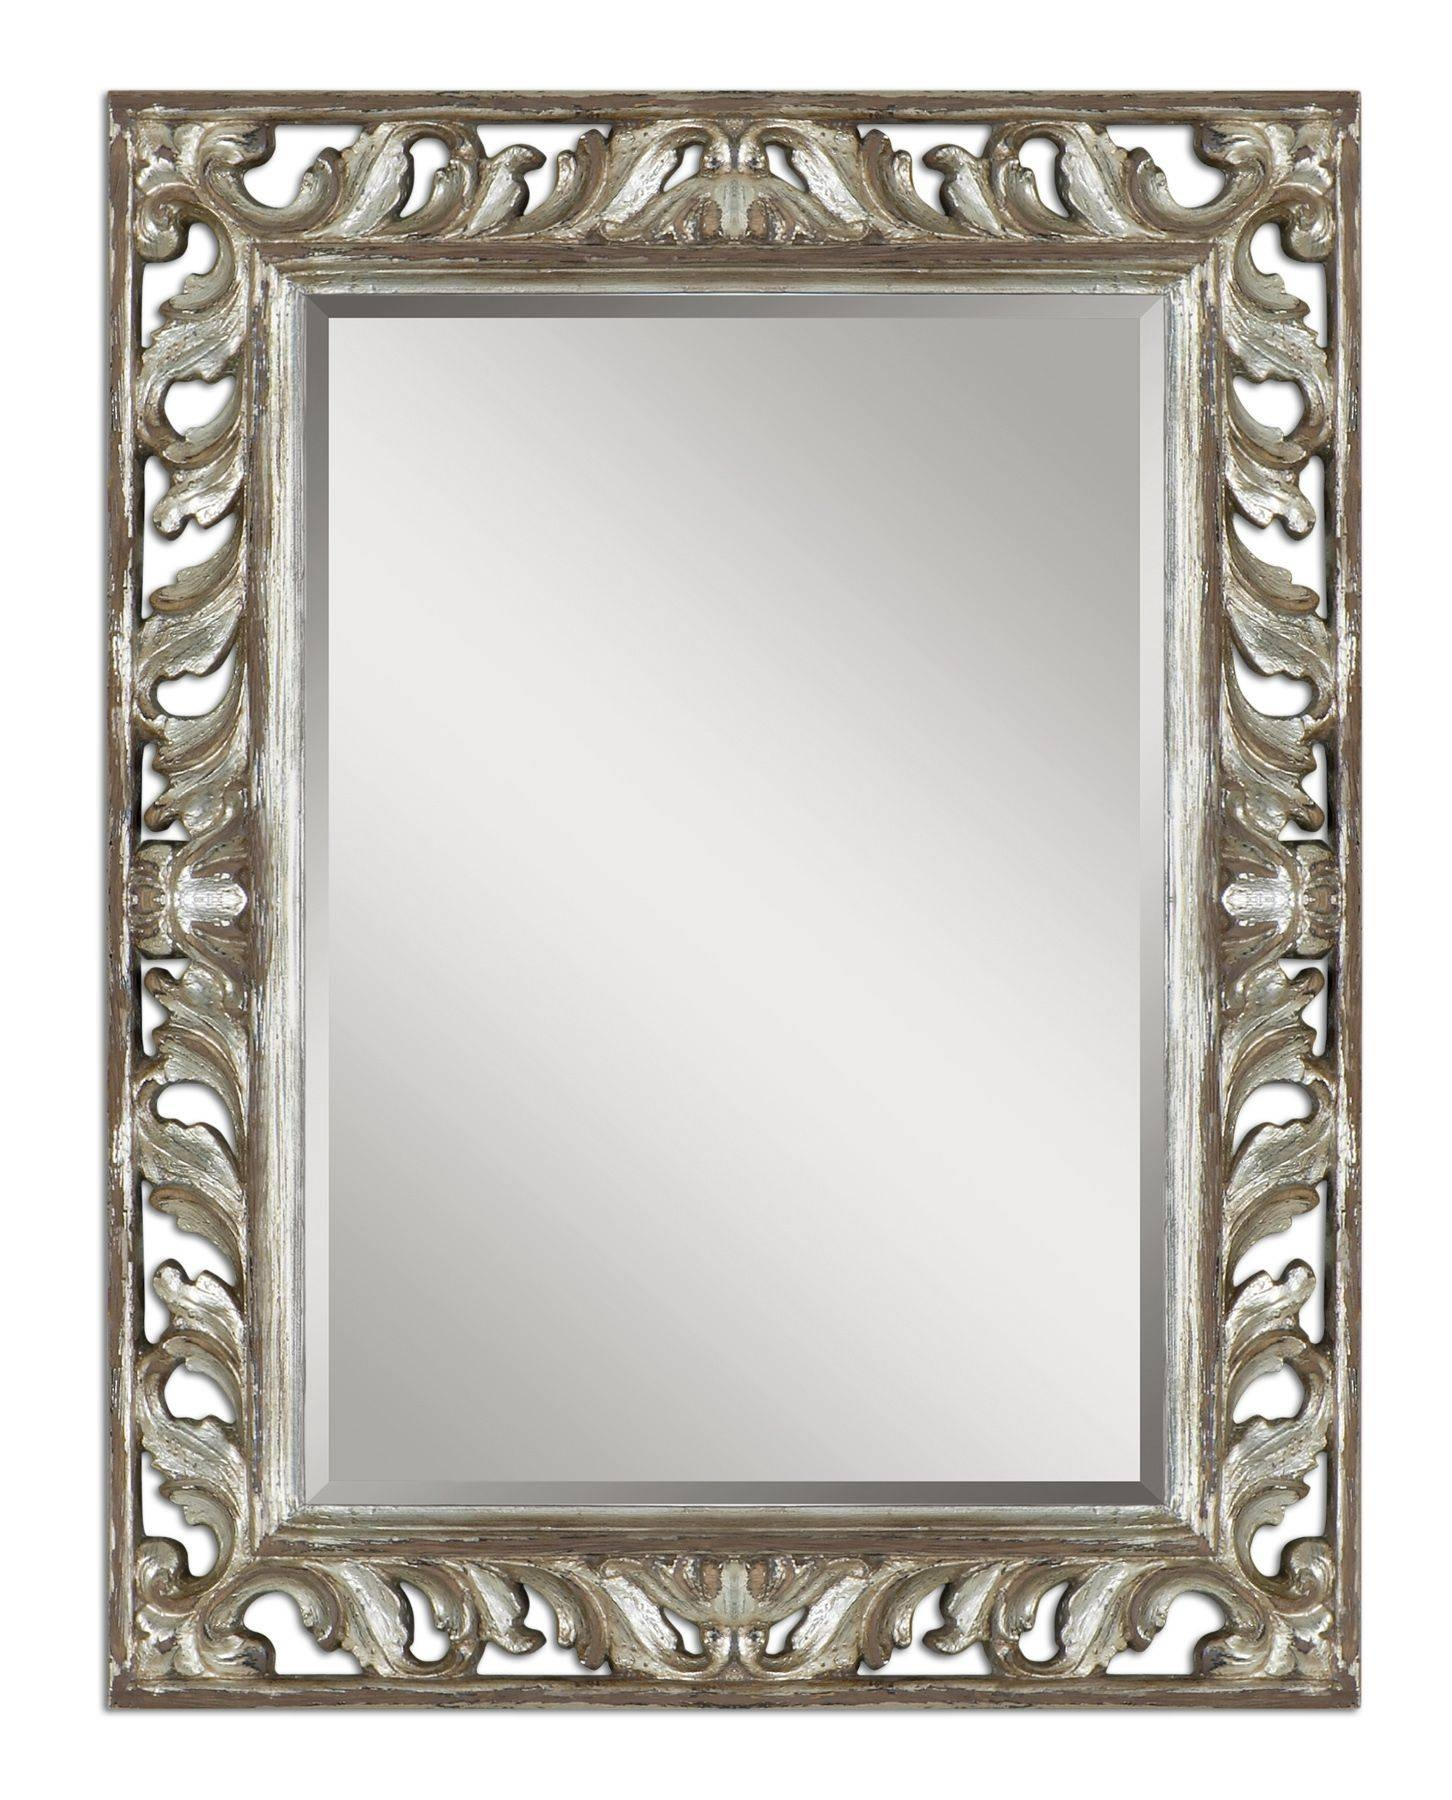 Mirrors You Won't Take Your Eyes Off Of - In Decors regarding Silver Mirrors (Image 12 of 25)